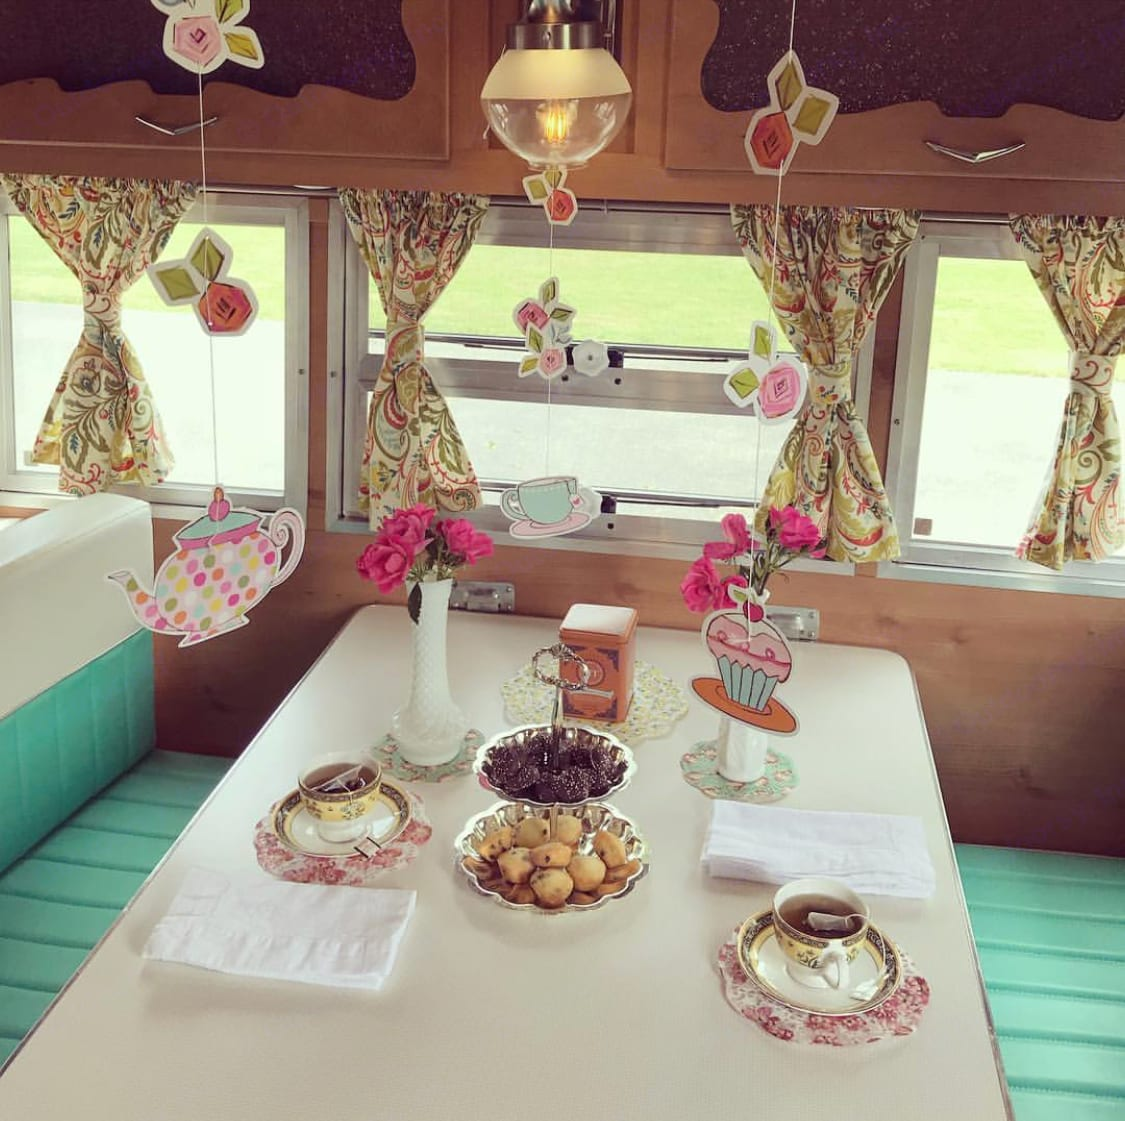 It's easy to plan the perfect gathering in this stylish camper!. Shasta Airflyte 2015